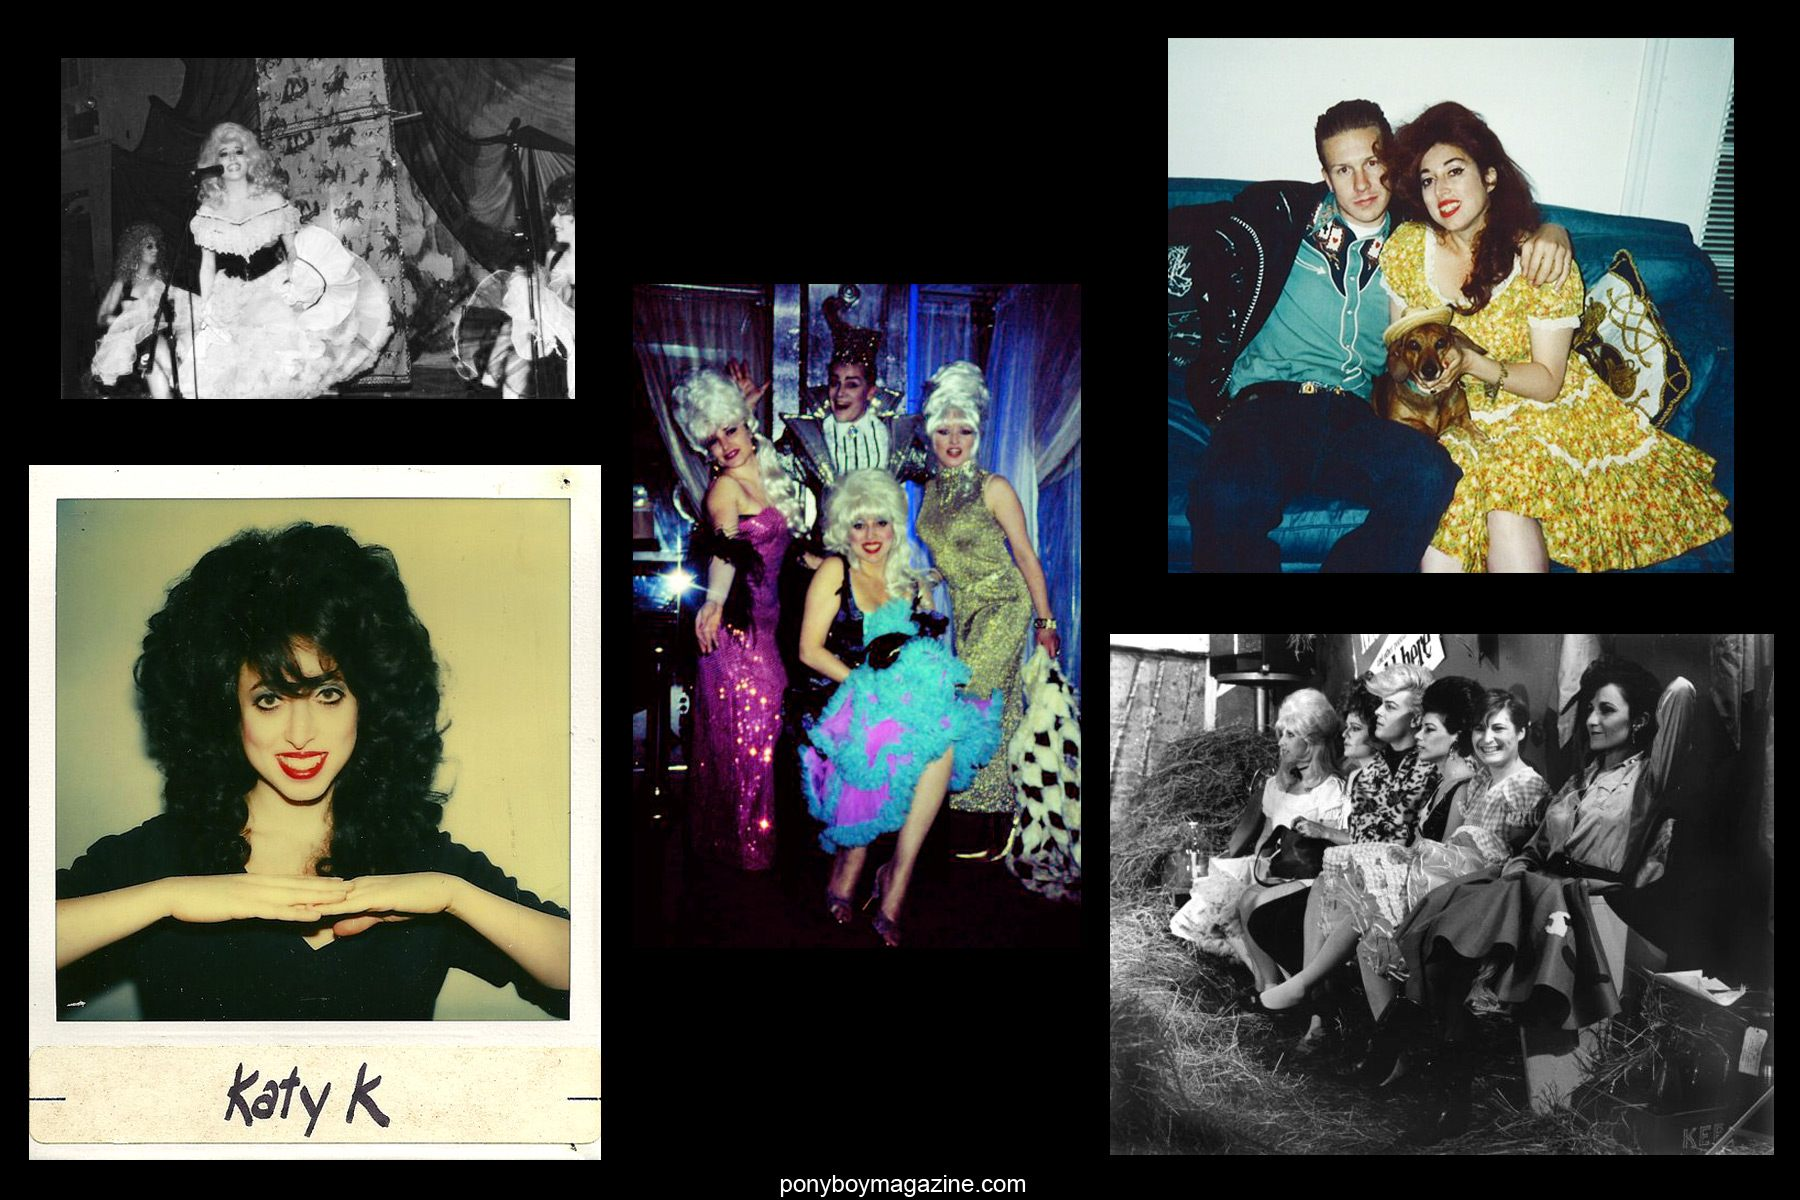 Assorted old photos of Katy K and John Sex for Ponyboy Magazine.